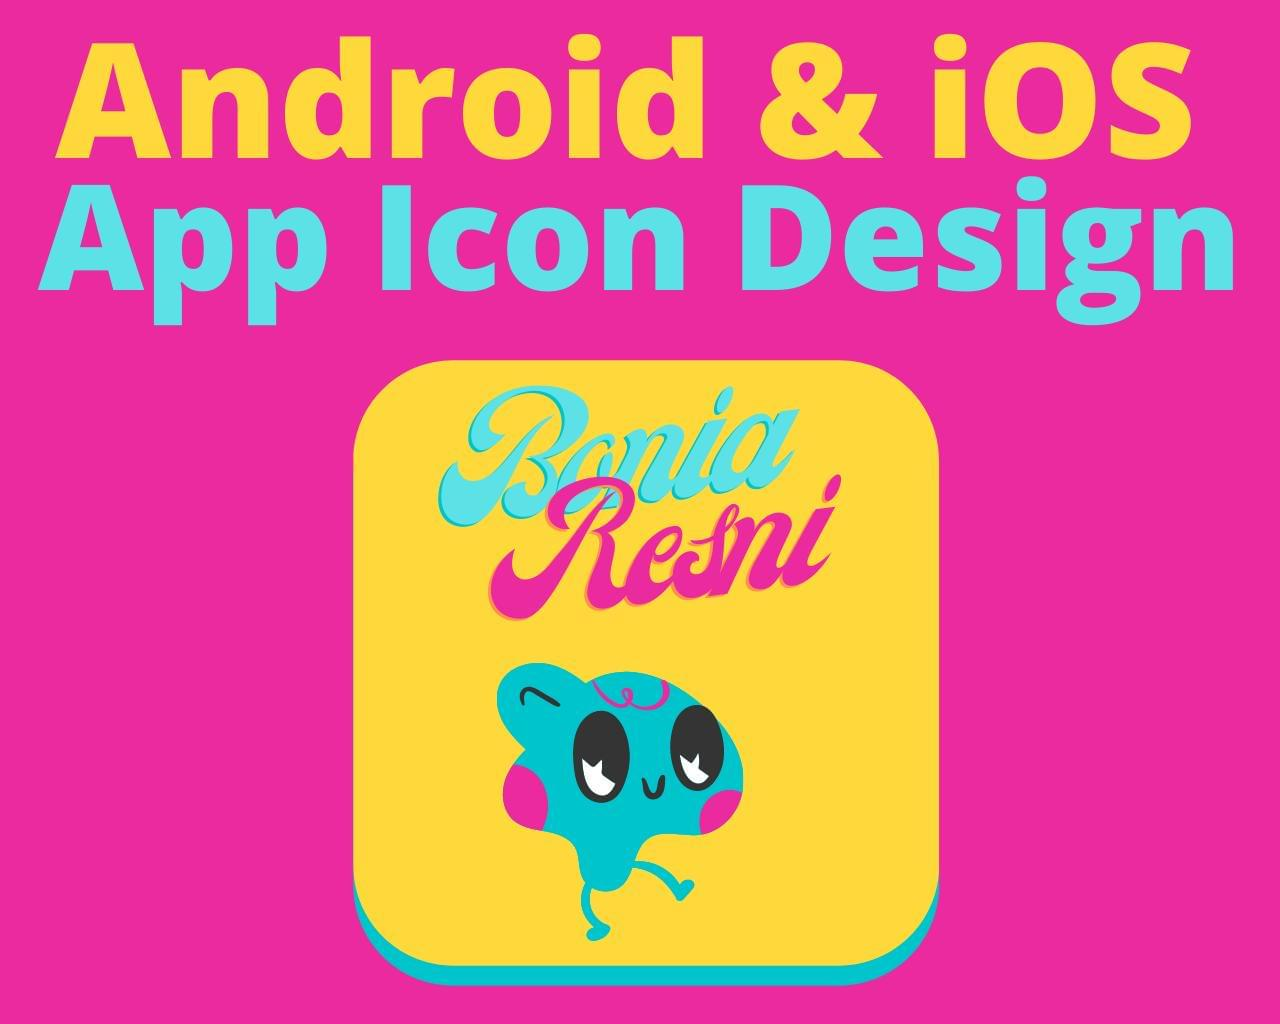 Android & iOS App Icon Design by DePautaMadre - 119564